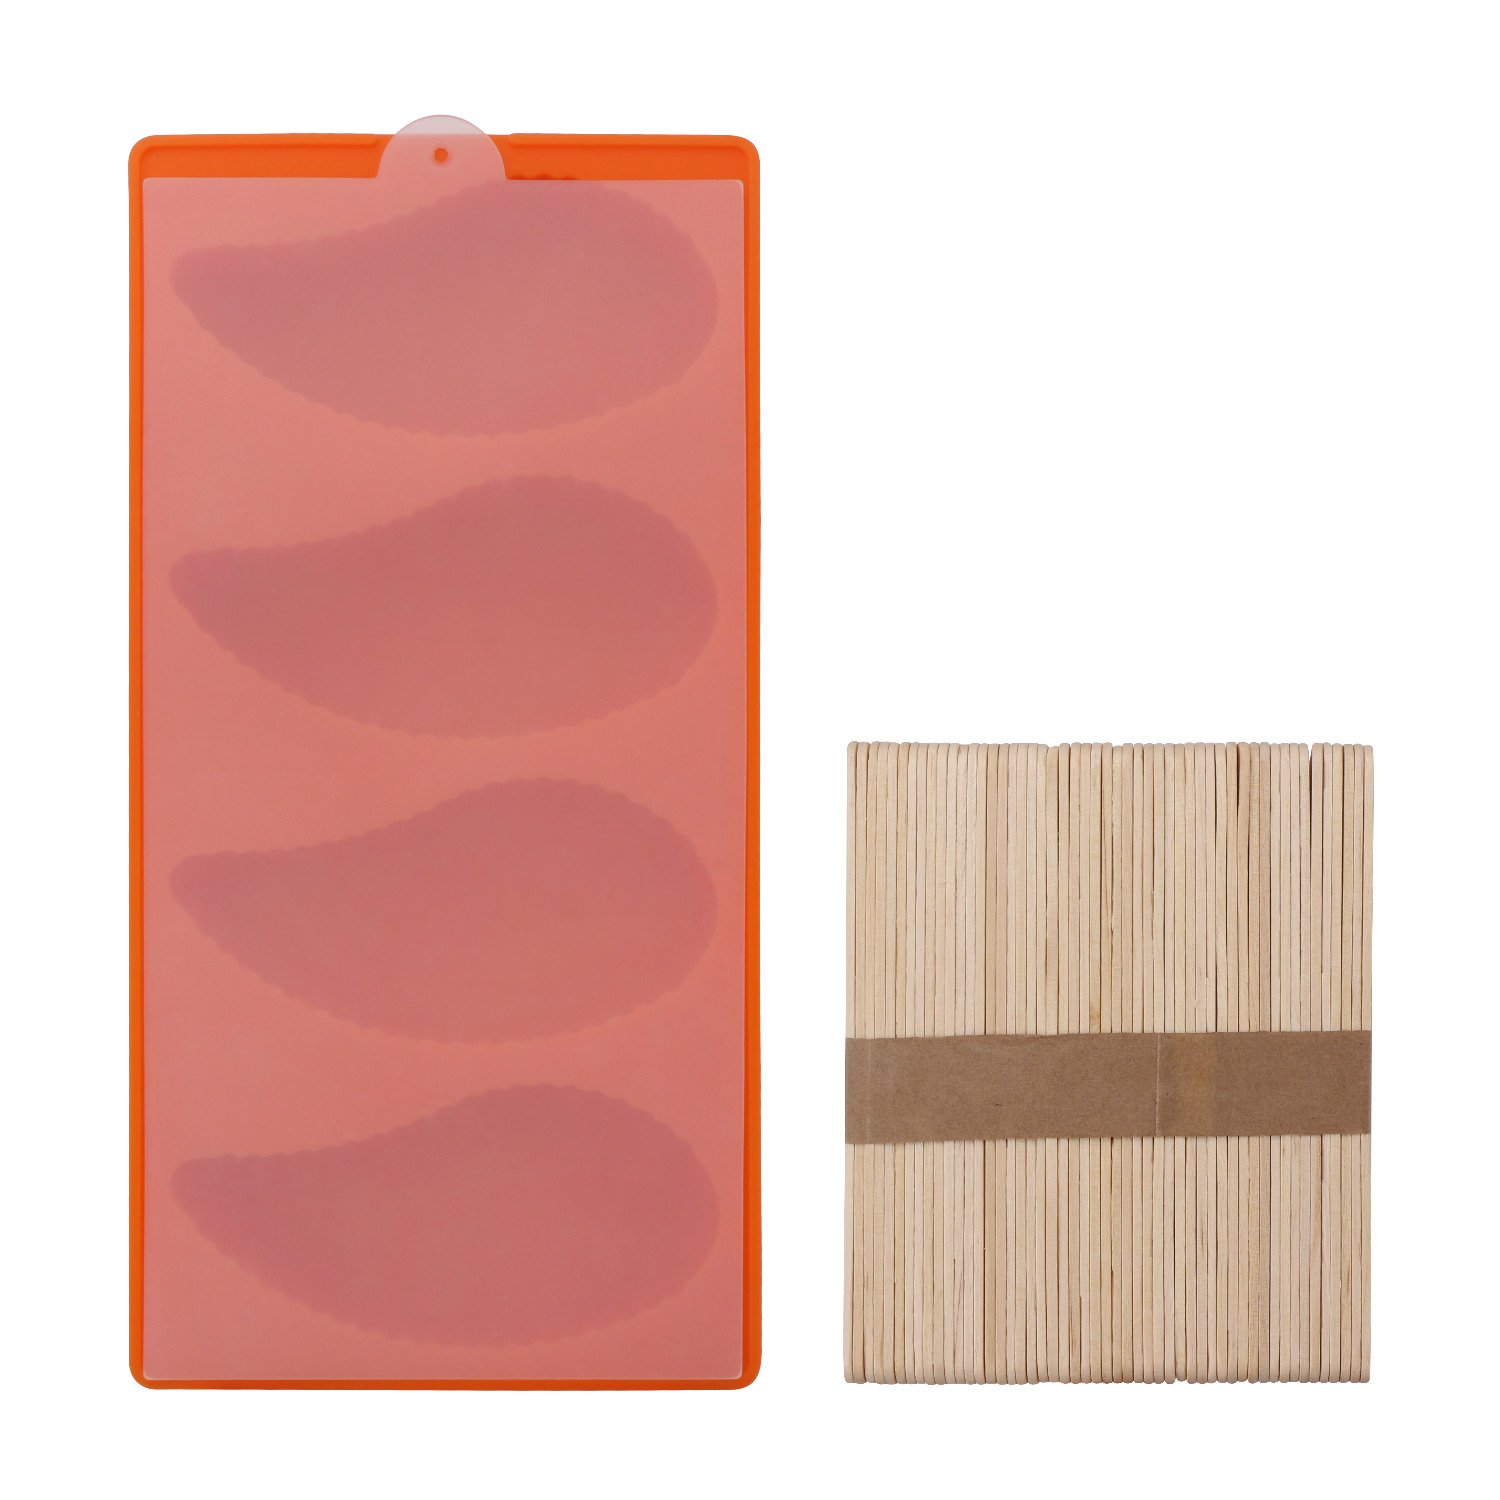 Beasea Popsicle Mold Ice Pop Maker BPA Free Silicone Ice Pop Molds Reusable with 50 Wooden Sticks and Lid